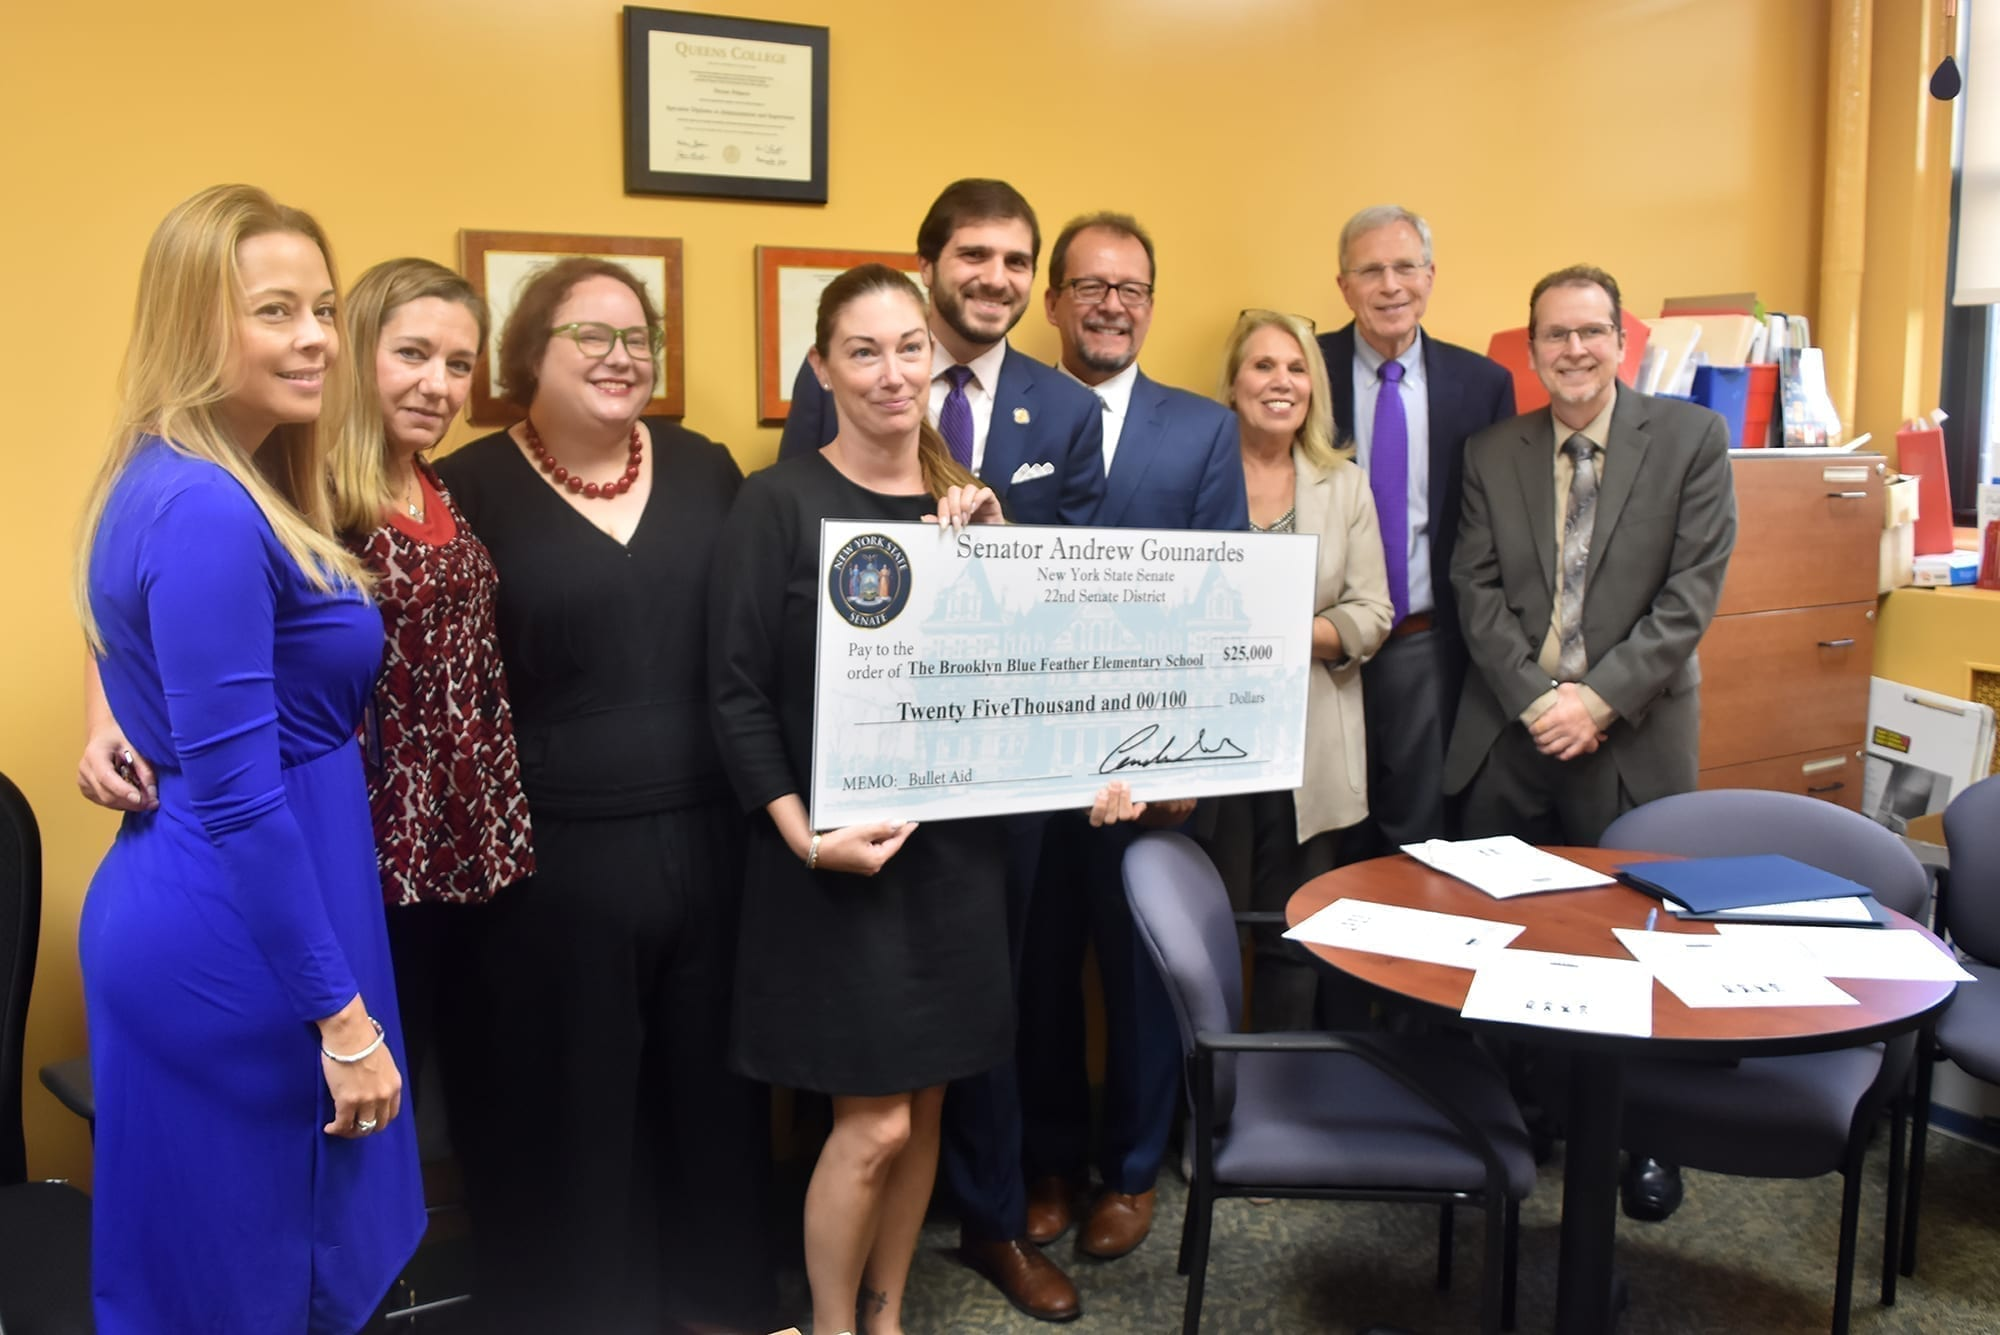 Senator Andrew Gounardes provided $25,000 to Brooklyn Blue Feather after he was inspired by a visit to the school during his campaign